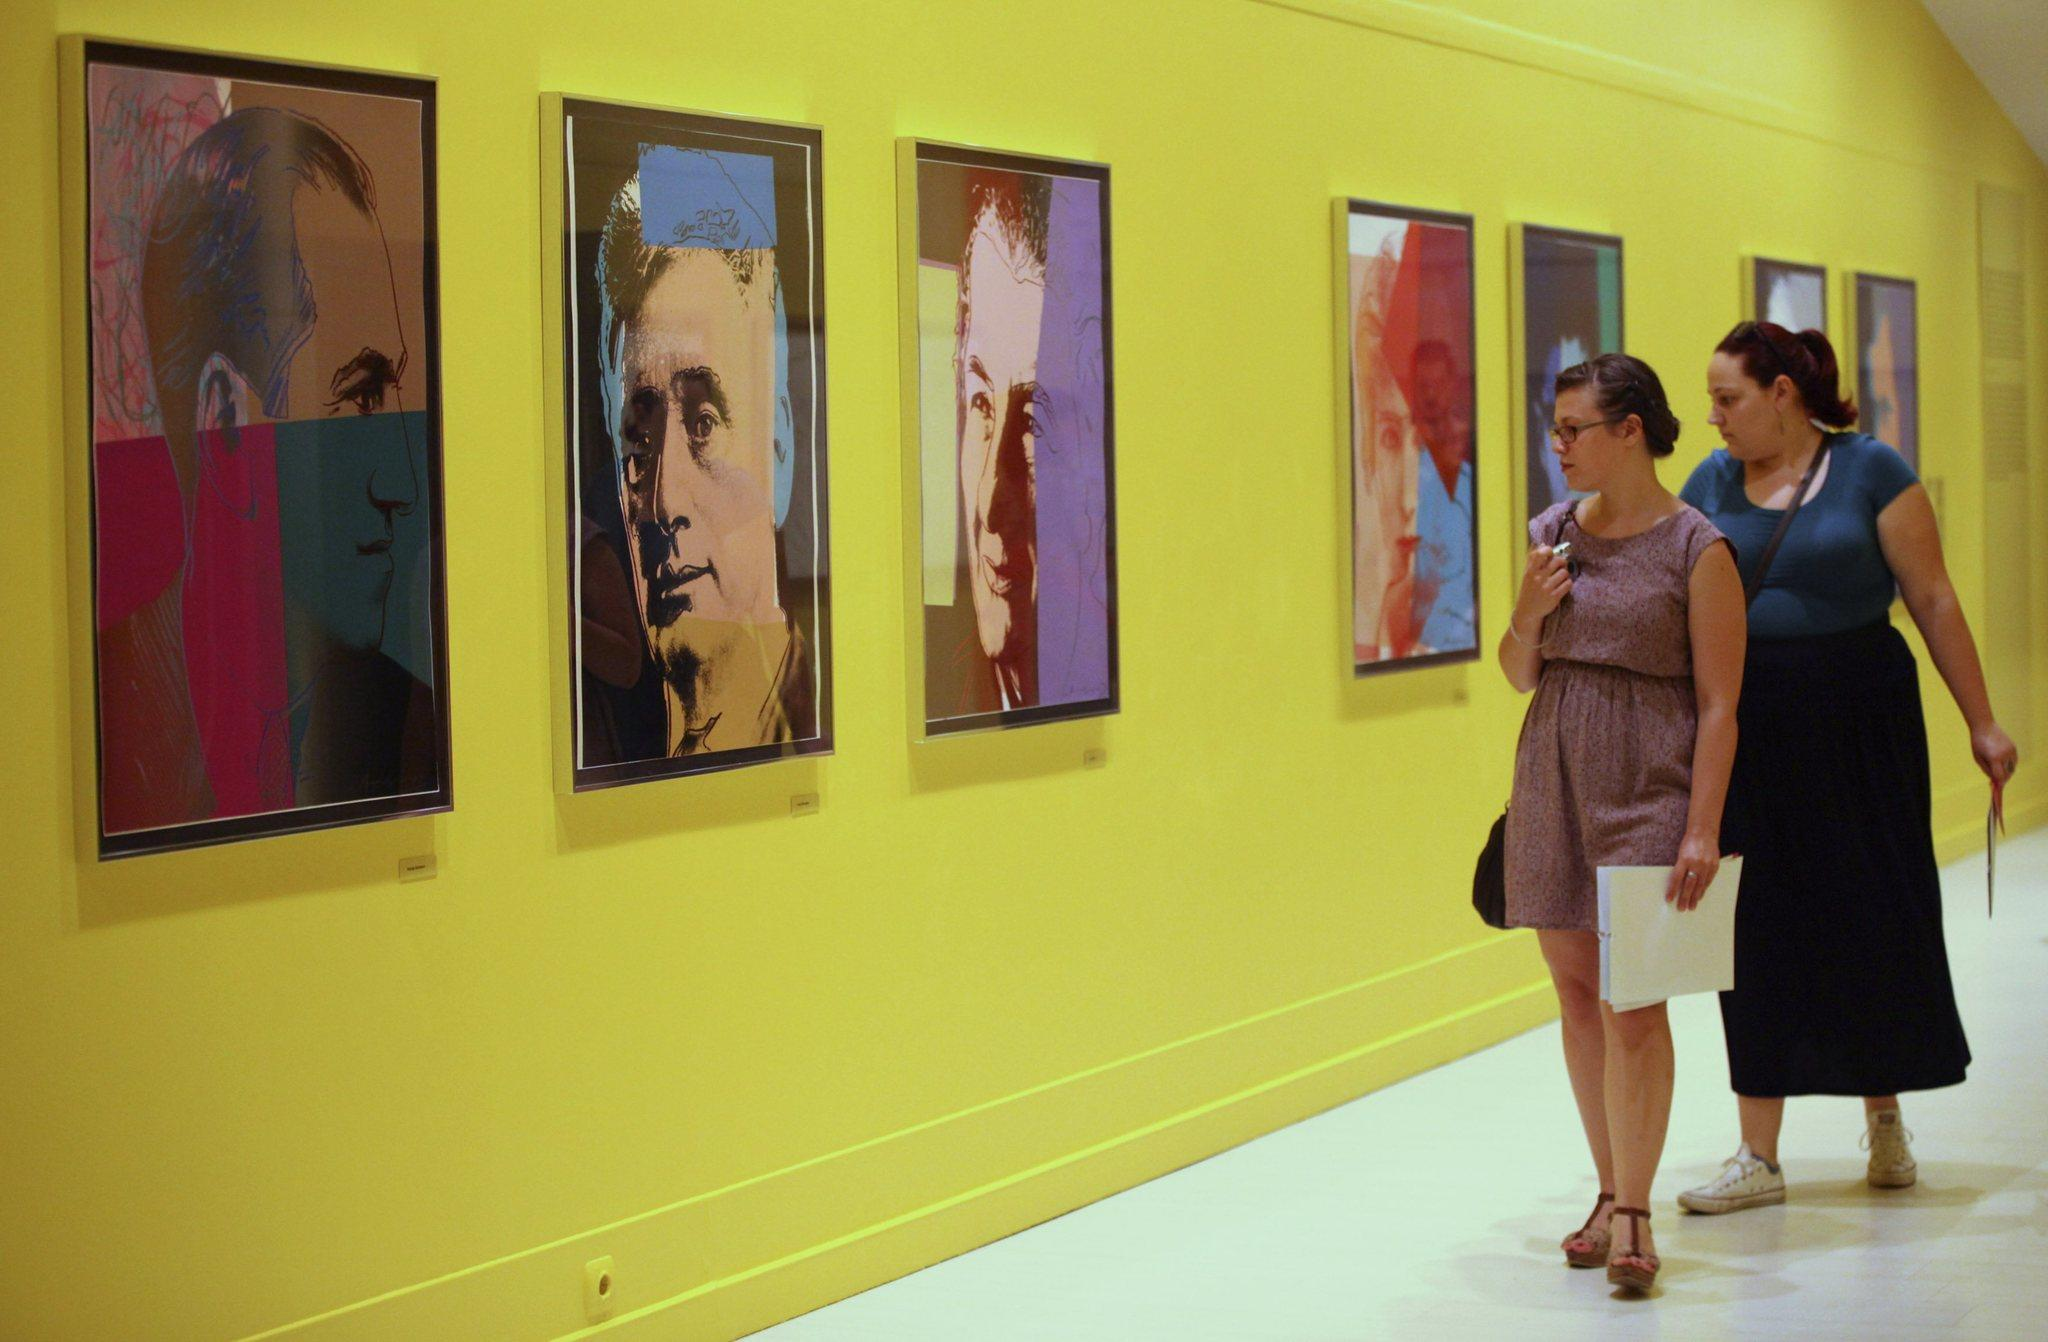 Visitors look at artworks at Pera Museum in Istanbul June 10, 2014. A show of Andy Warhol's most evocative and familiar images at Istanbul's Pera Museum portrays the pop art great in a very personal light.